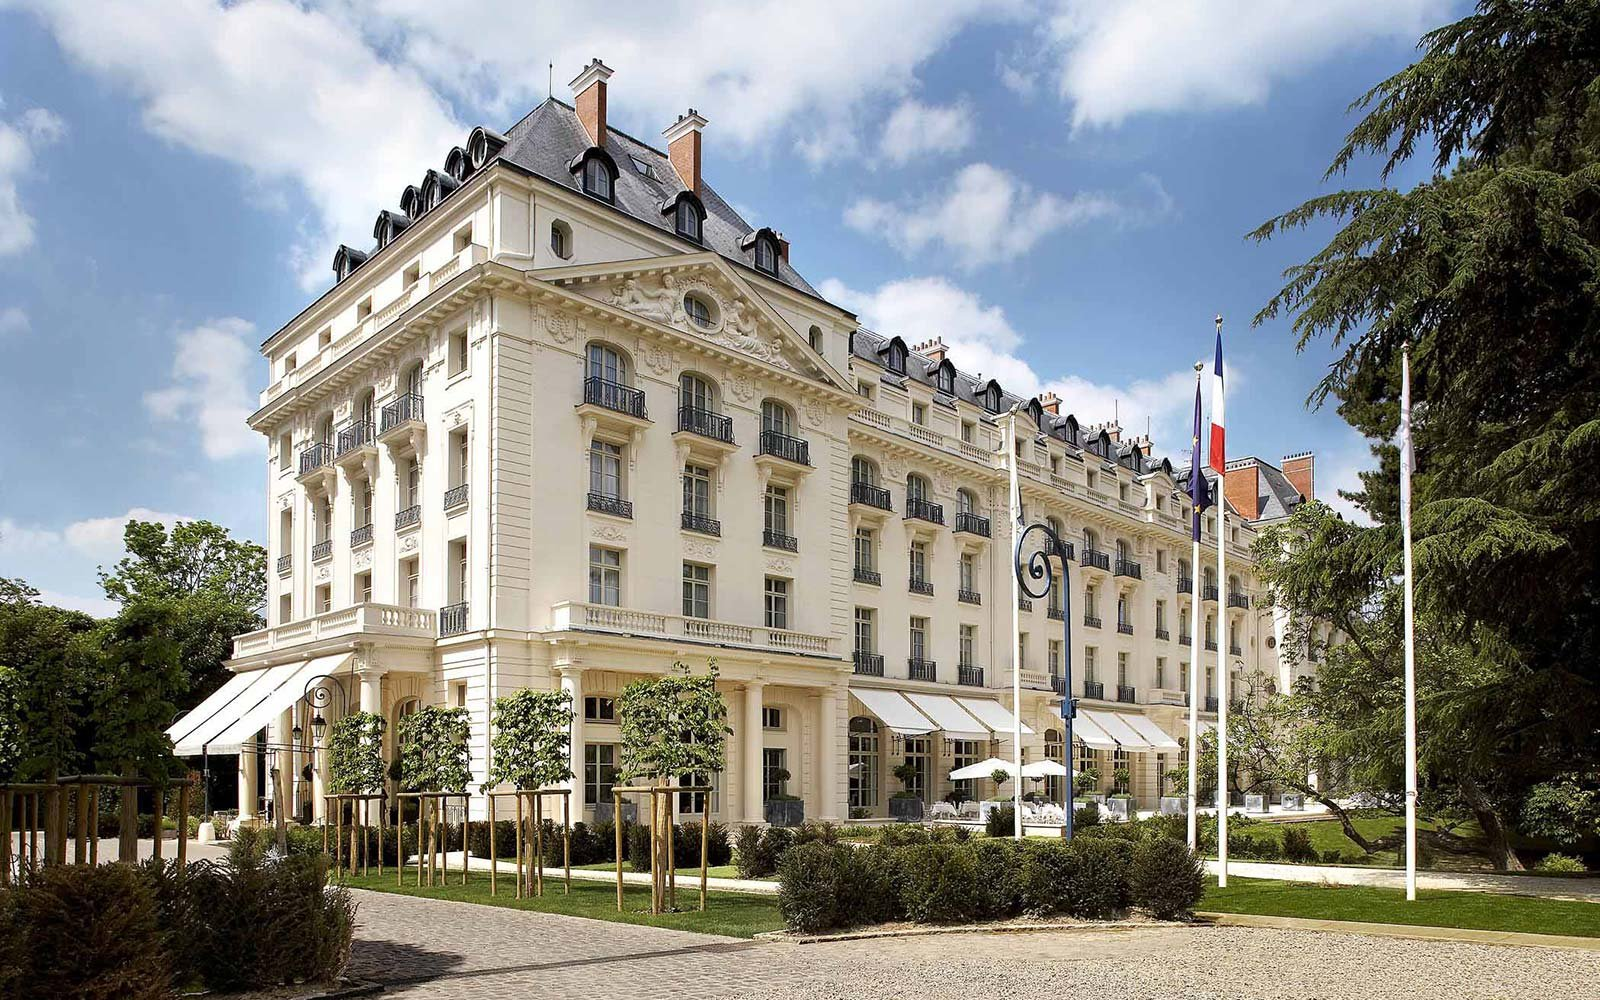 5. Trianon Palace, a Waldorf Astoria Hotel, Versailles